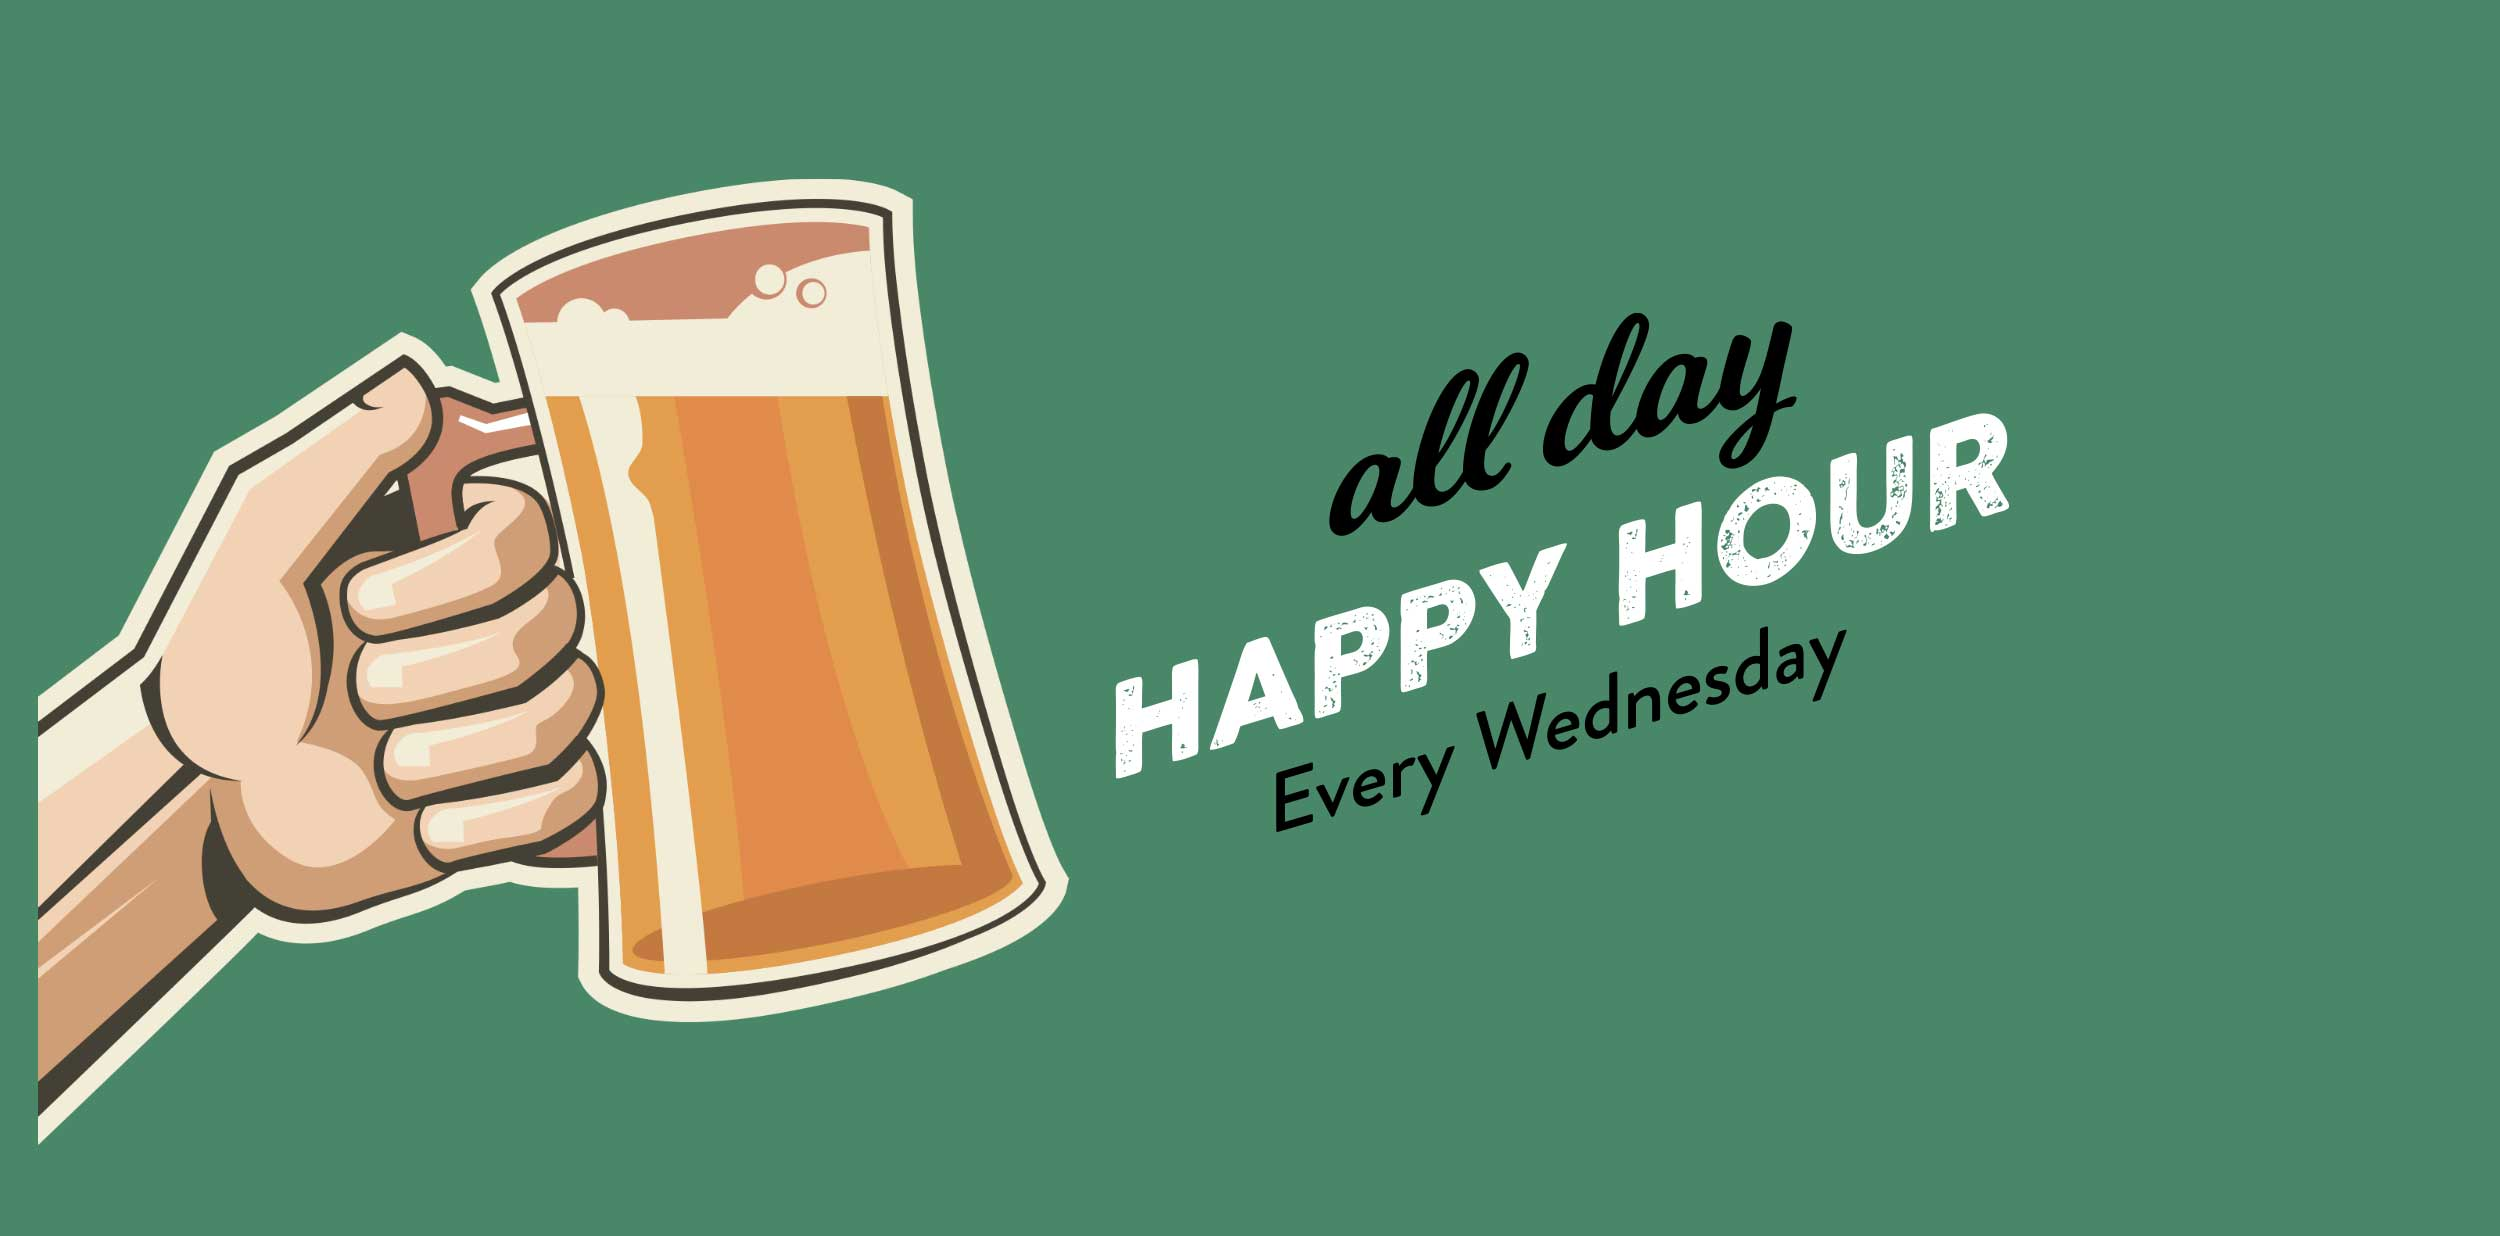 IKC_ALL-DAY-HAPPY-HOUR_WebGallery.jpg